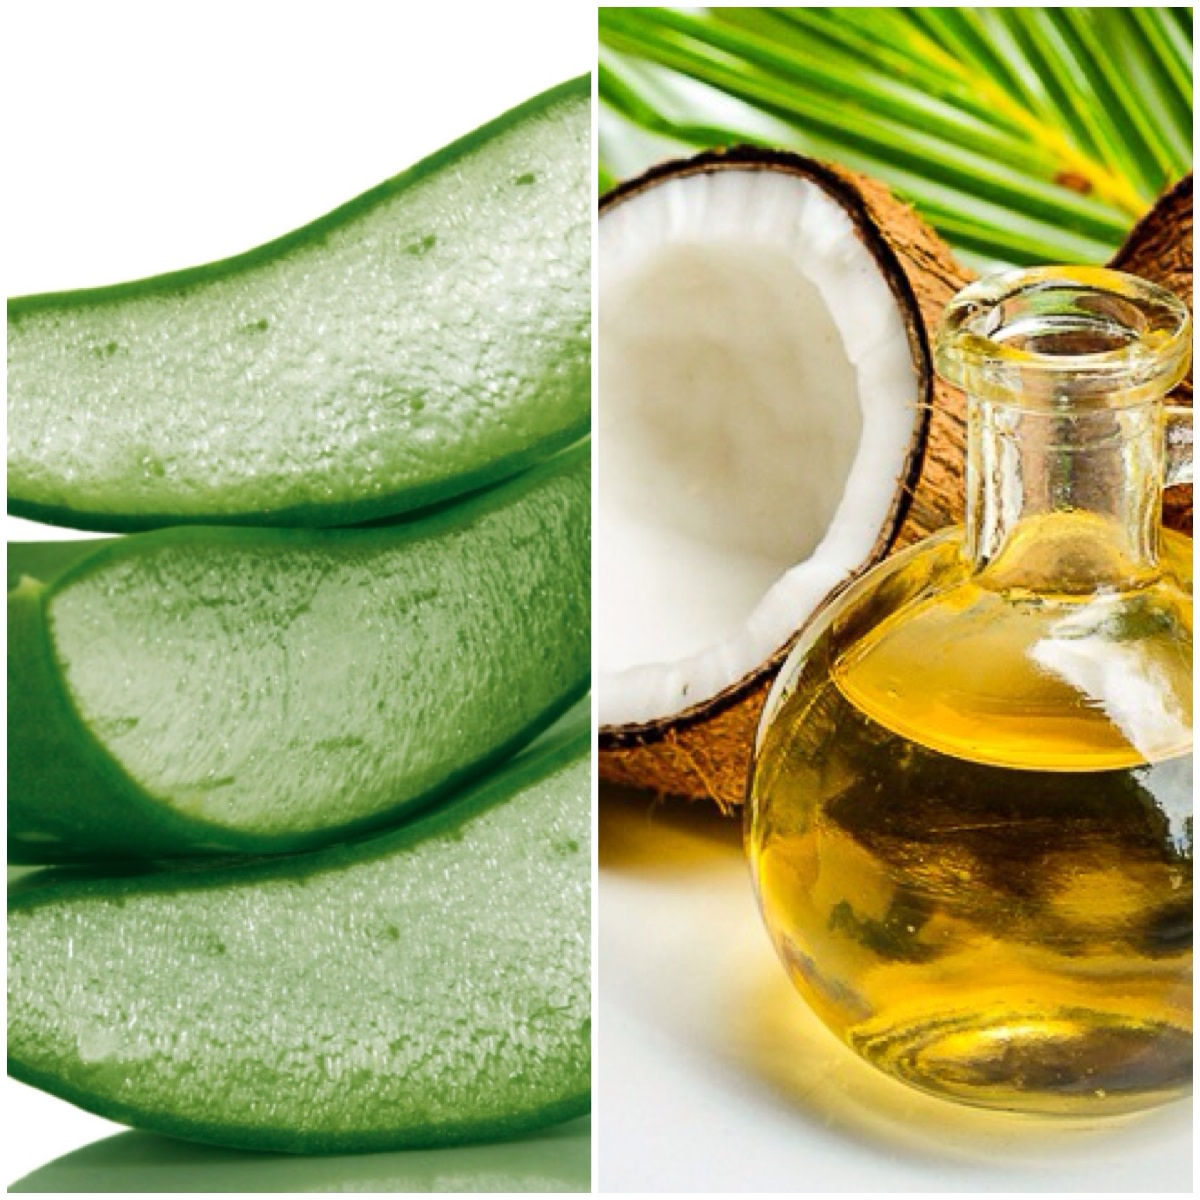 Aloe Vera vs. Coconut Oil - Benefits and Uses! Which is better?